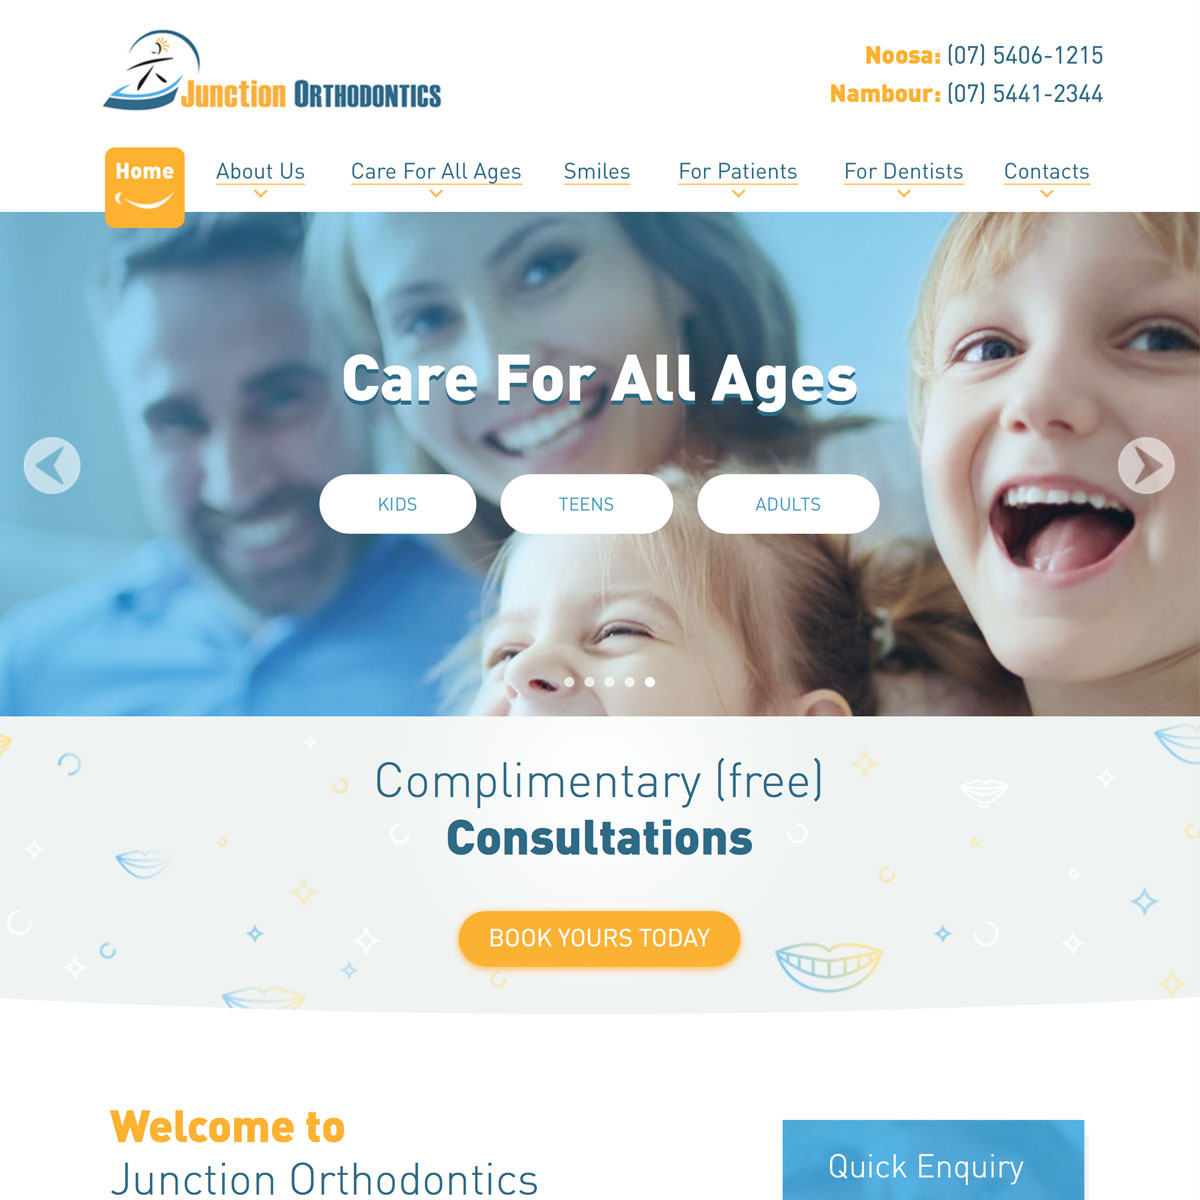 Junction Orthodontics - Care for All Ages